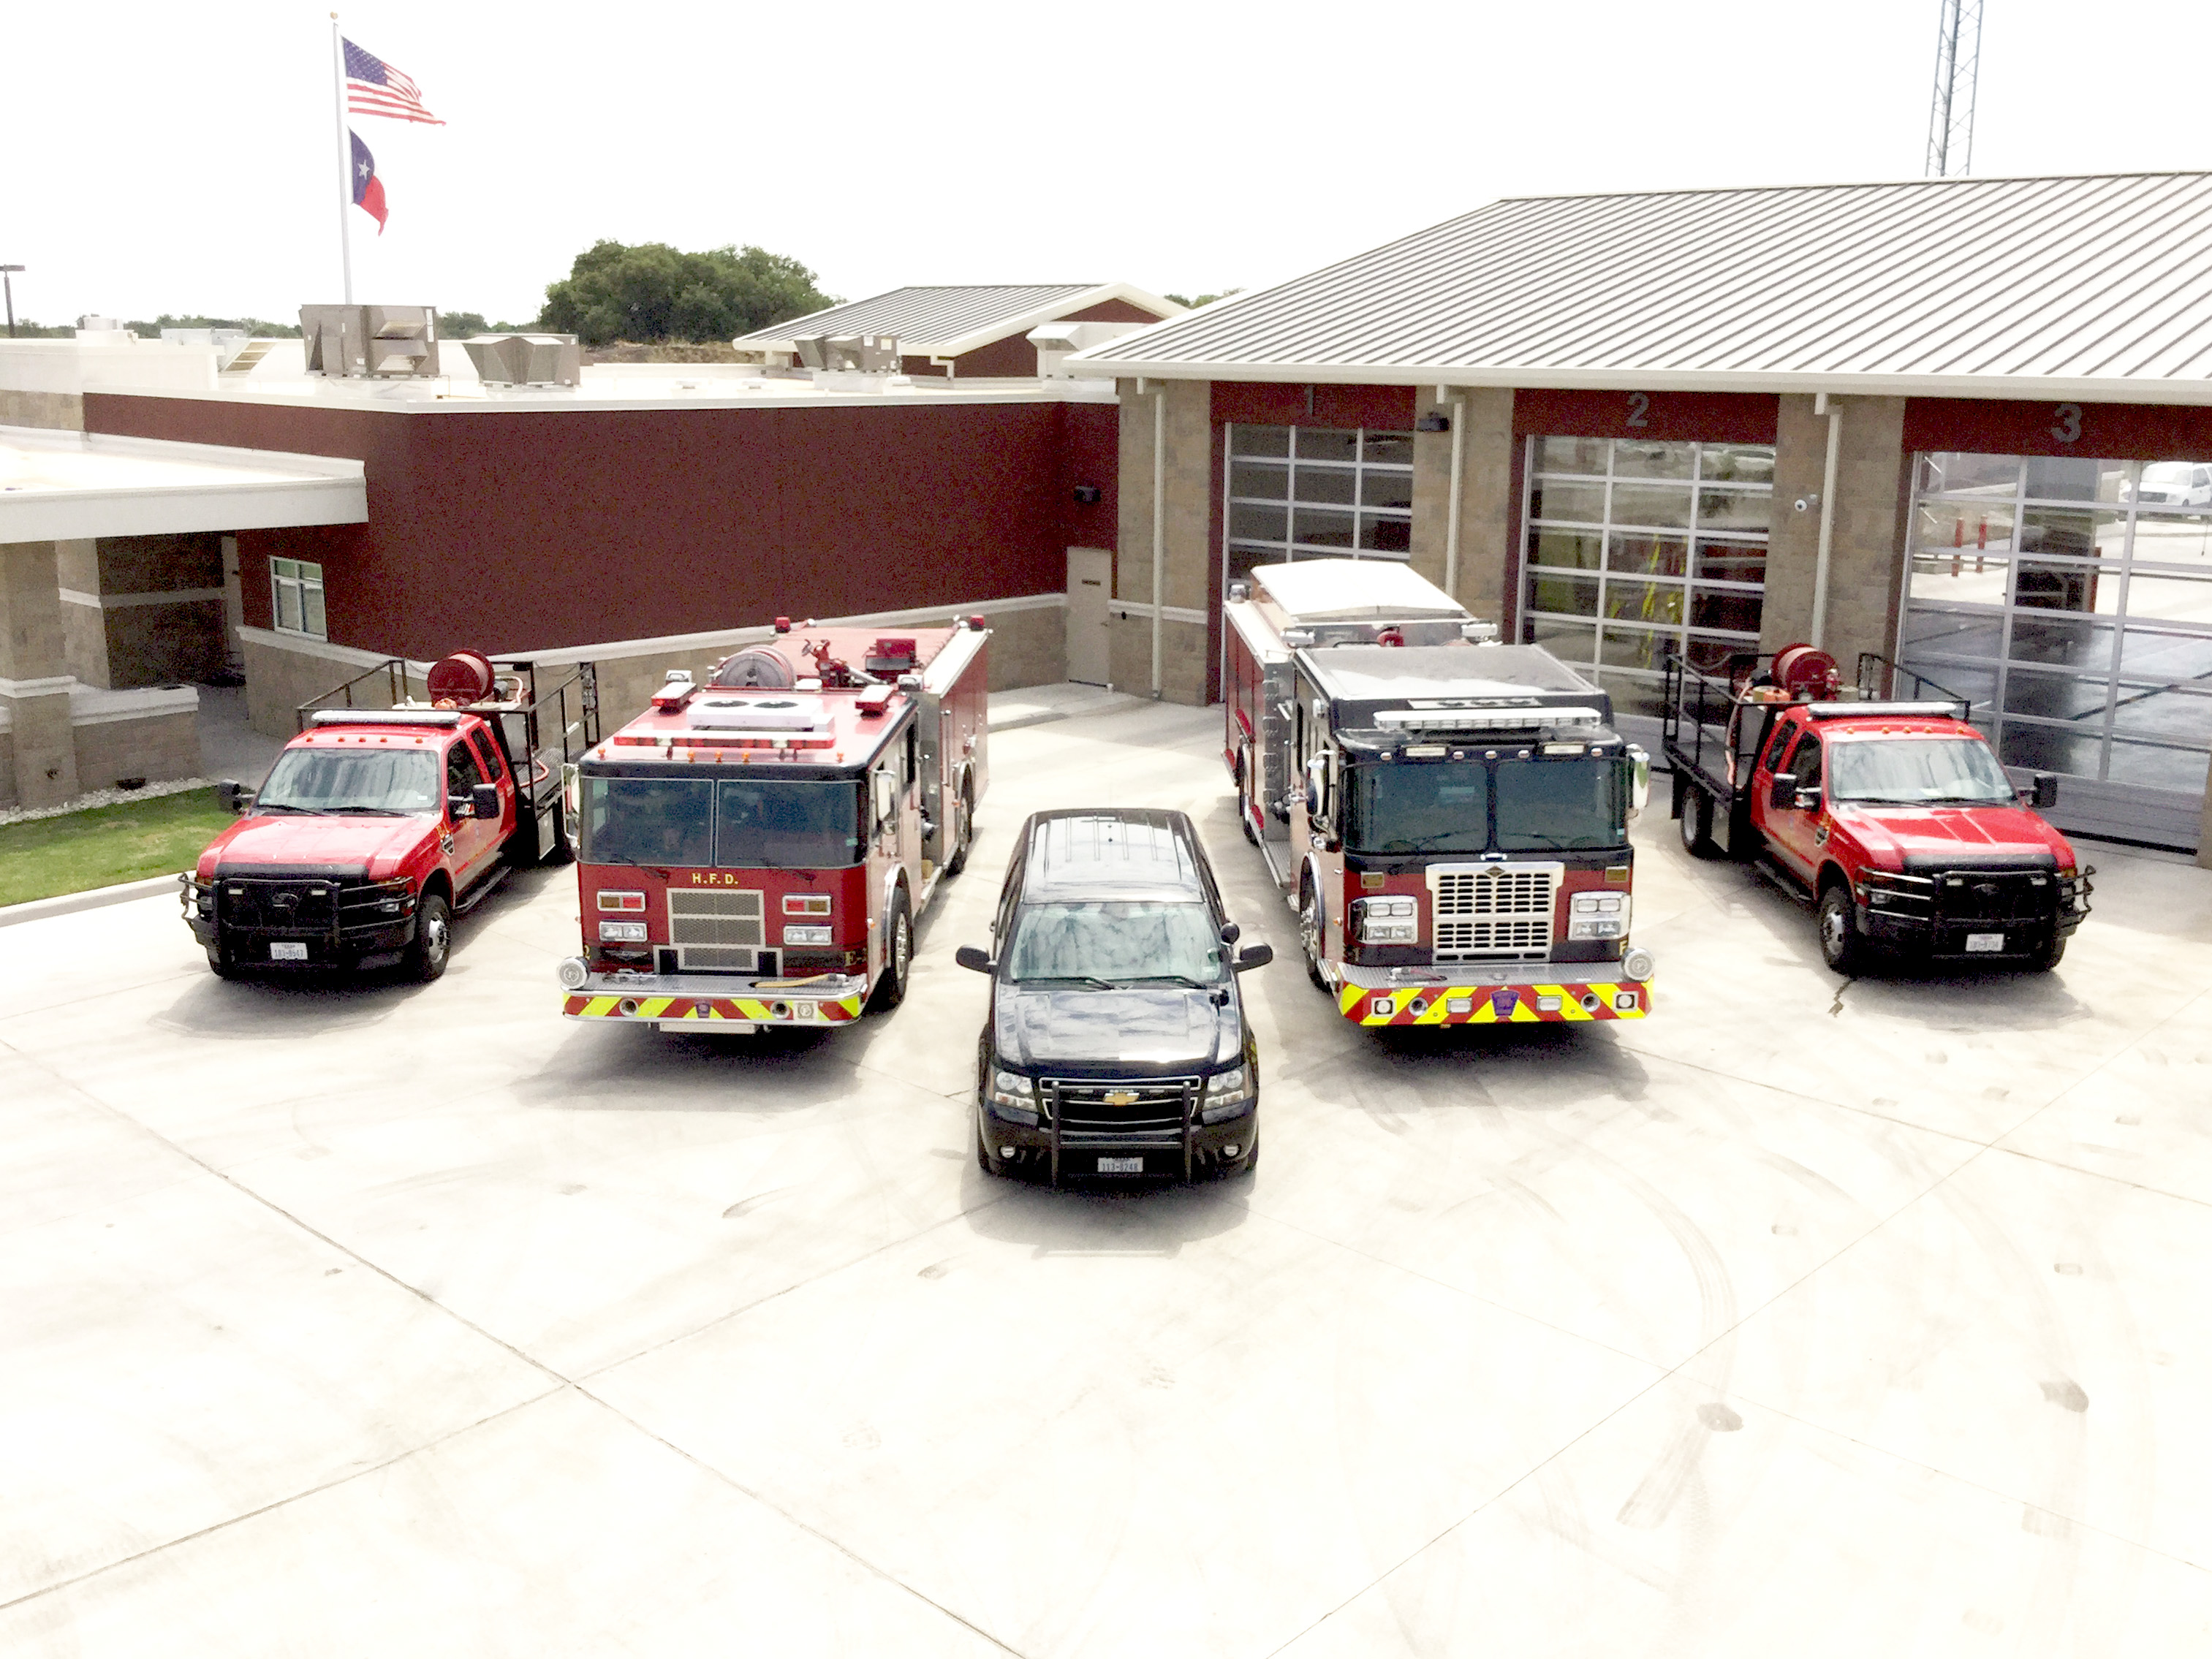 Fire Trucks at HPSF